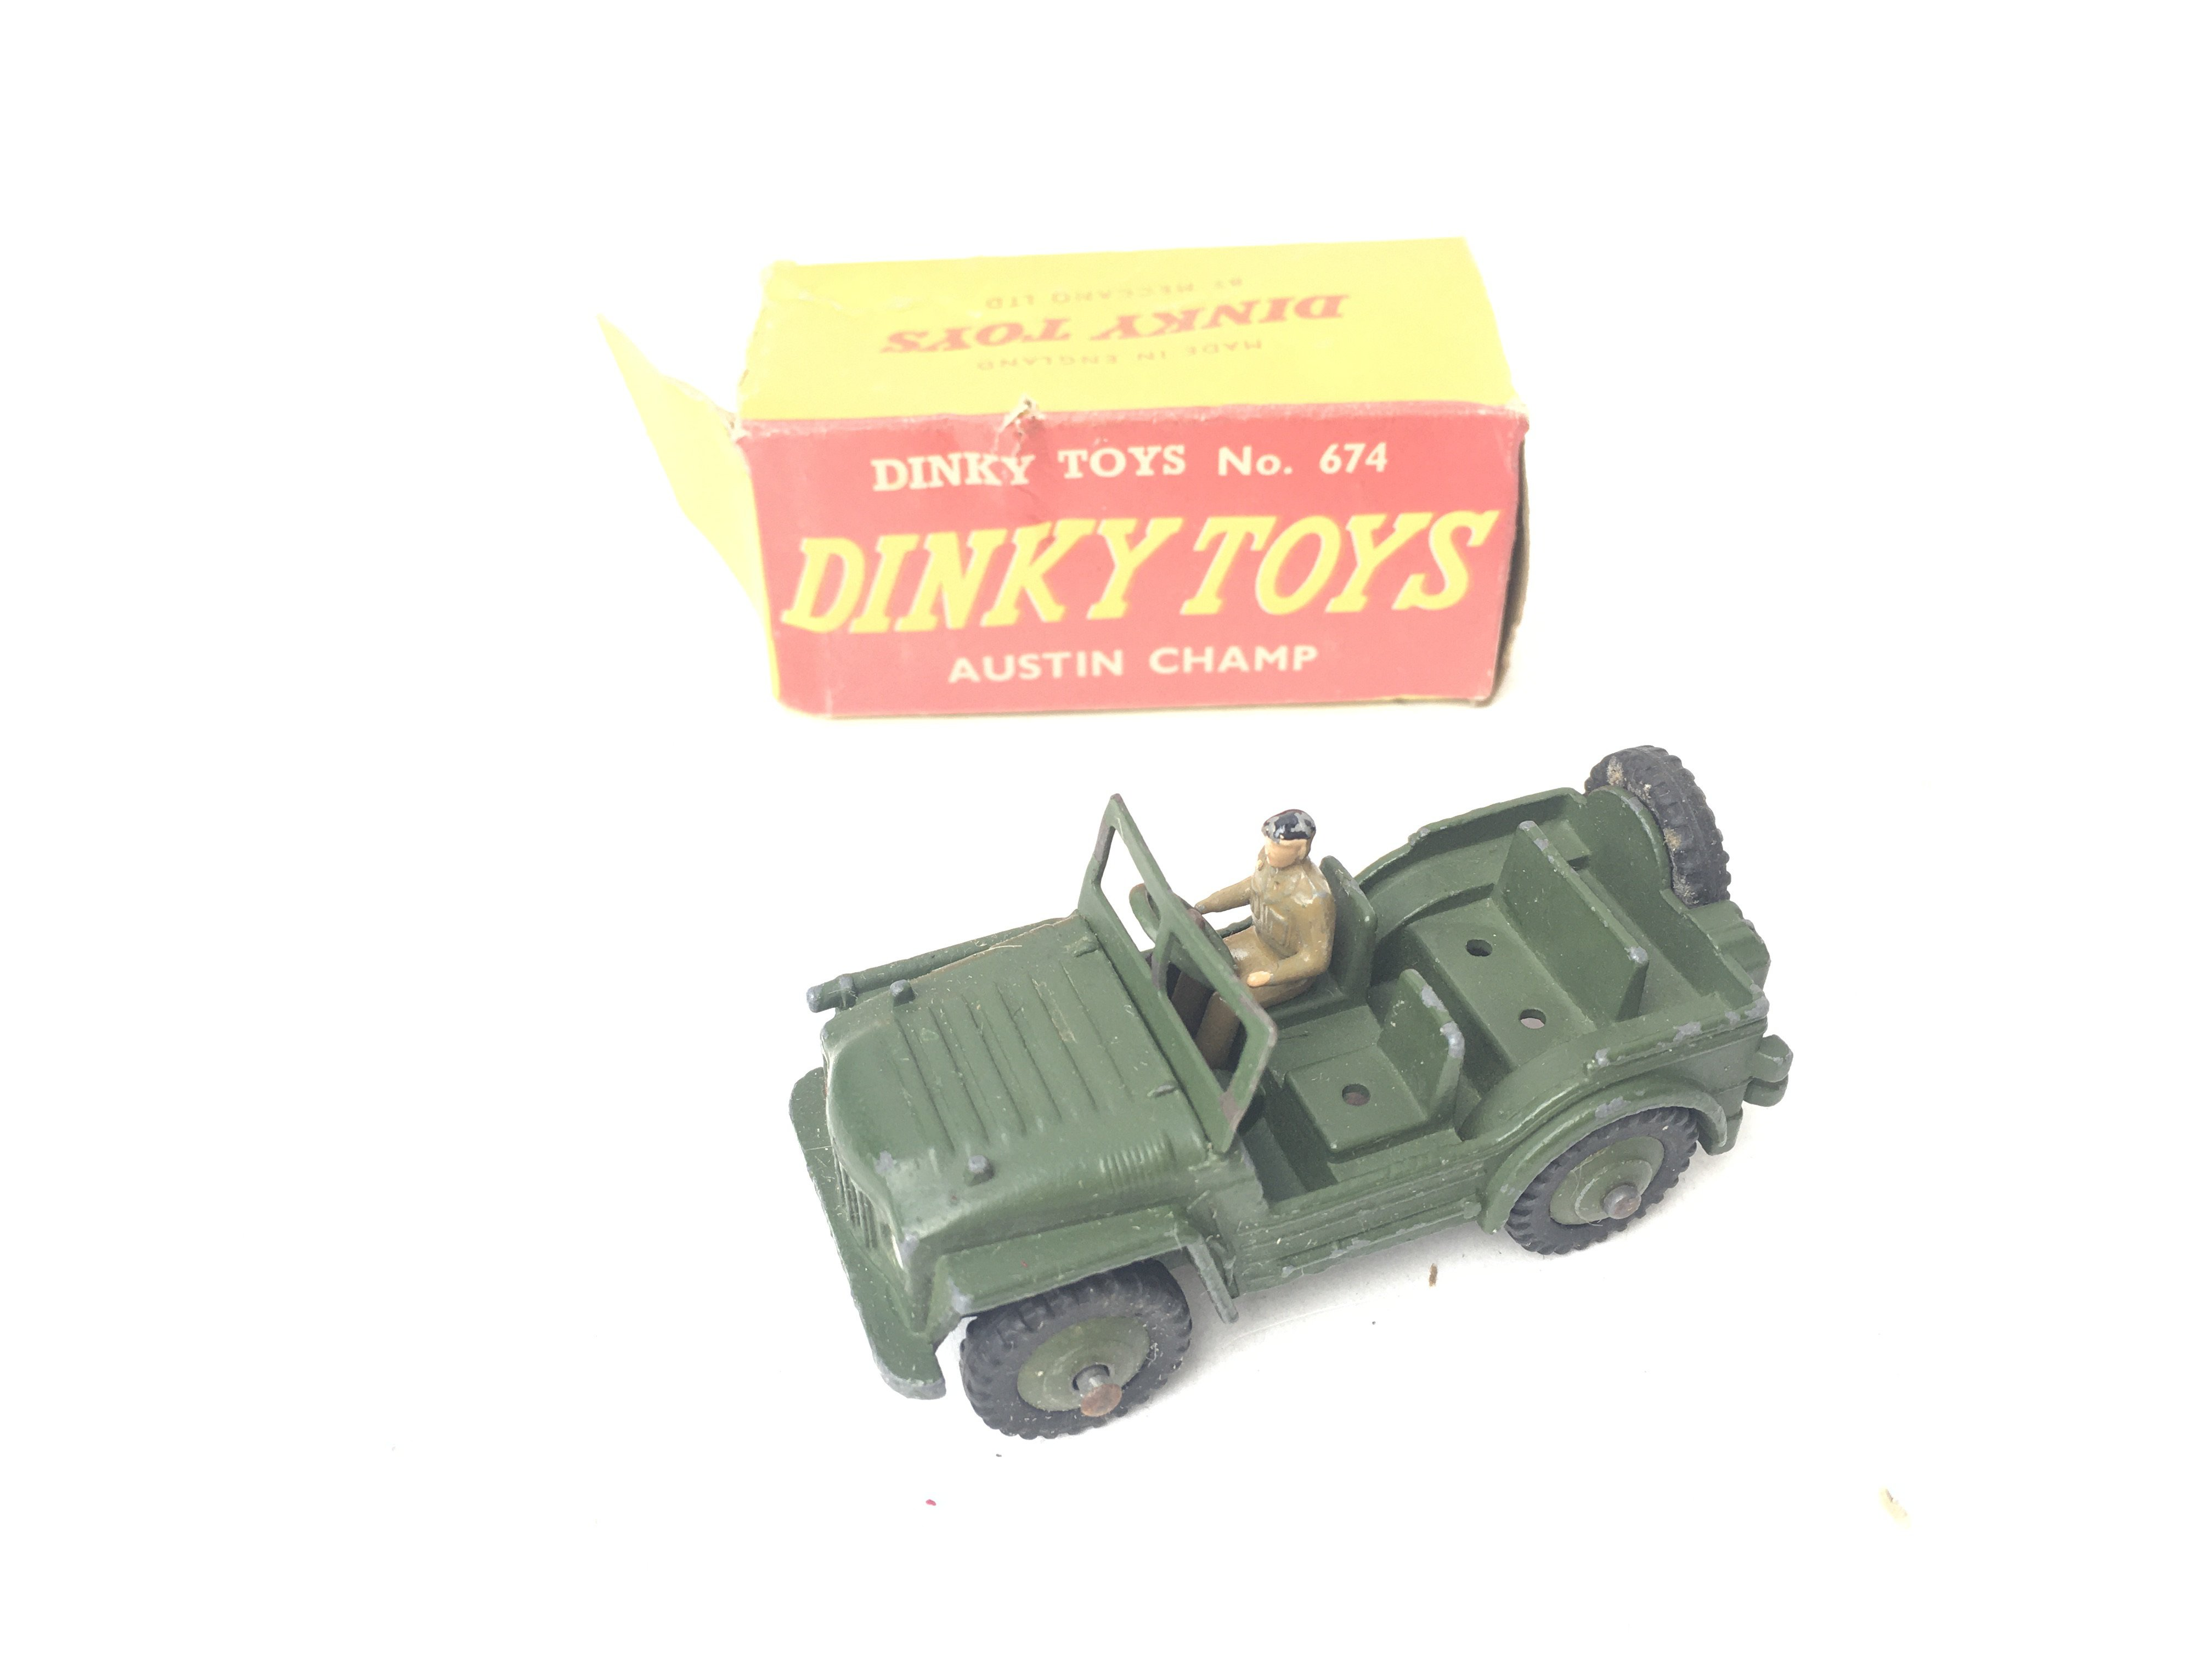 4 X Boxed Dinky Toys including Forward Control Lor - Image 4 of 4